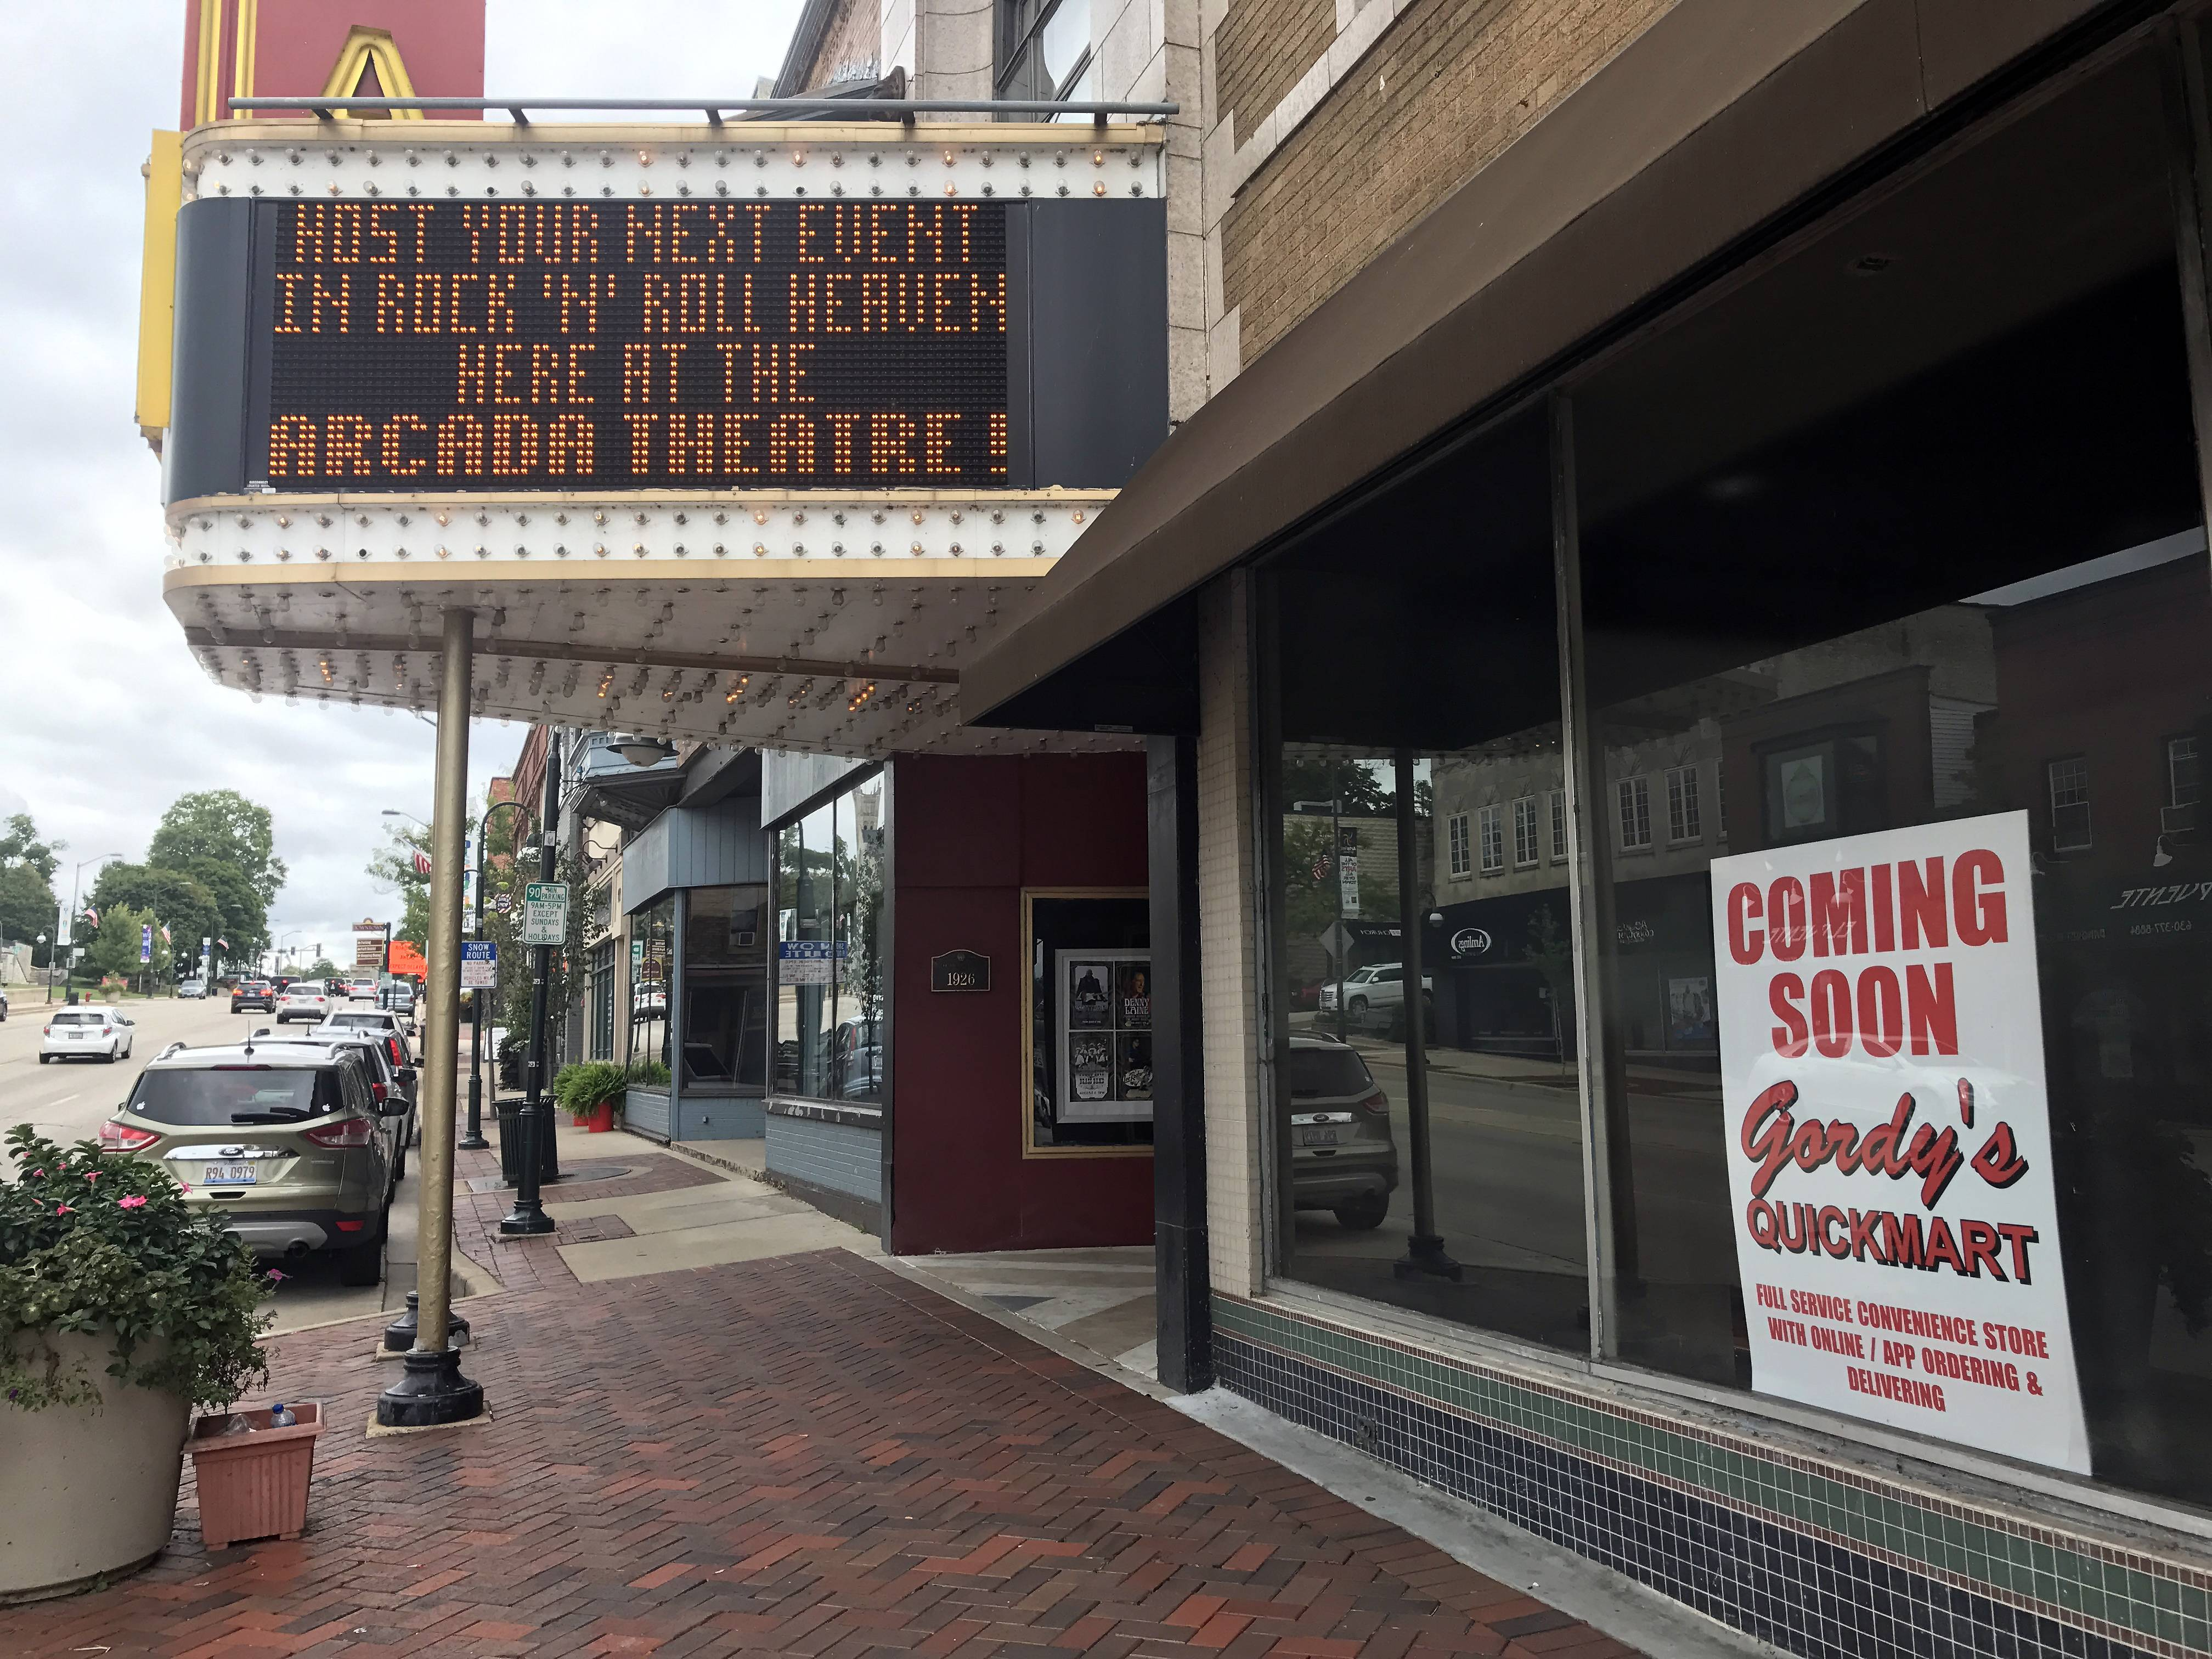 Gordy's Quick Mart is planned to open this fall next to the Arcada Theatre in downtown St. Charles.